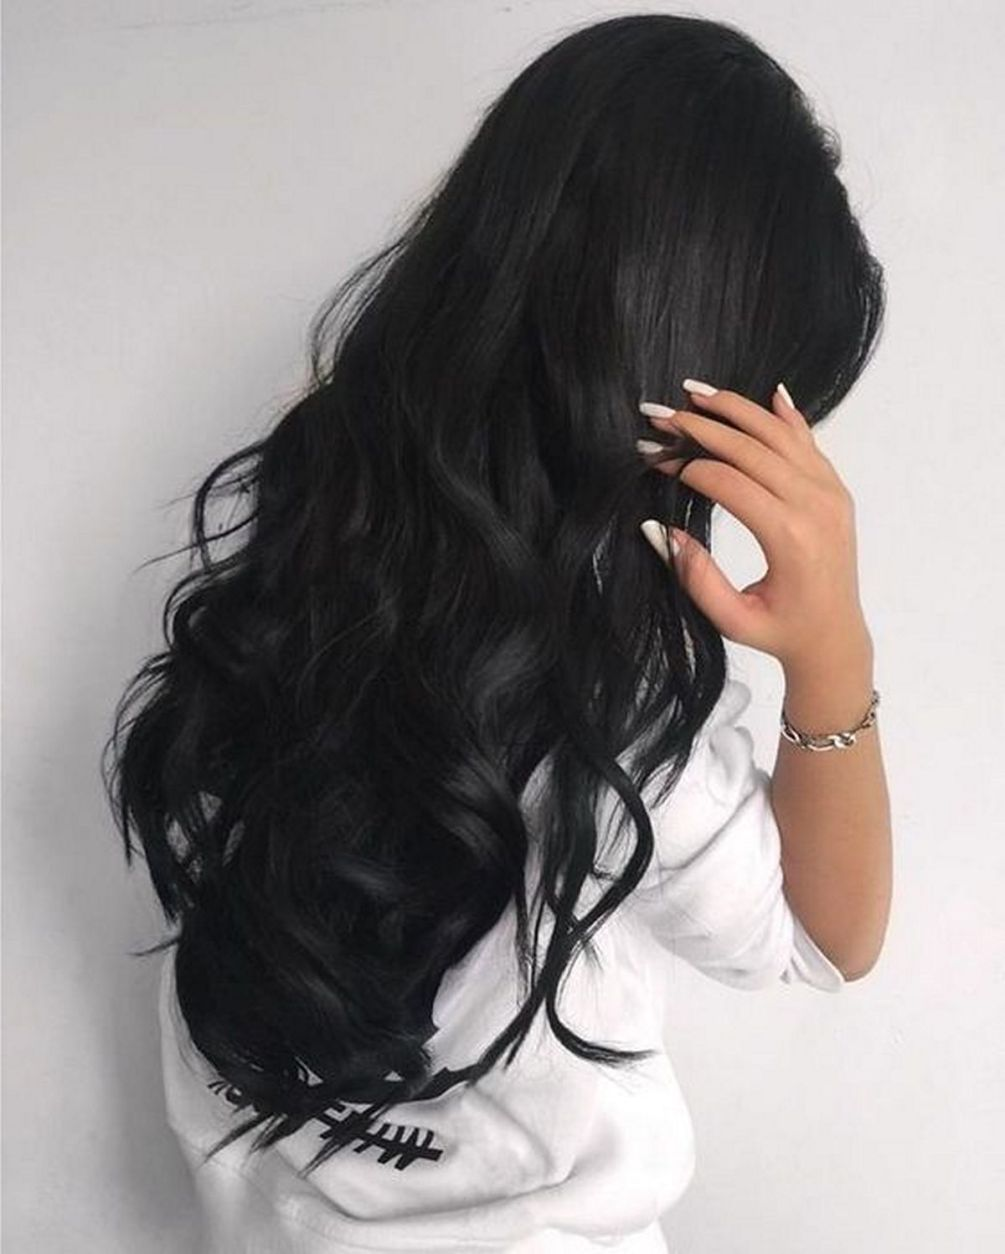 Stunning Hairstyles For Warm Black Hair Ideas 22 Dressfitme Hair Styles Long Hair Styles Hair Color For Black Hair